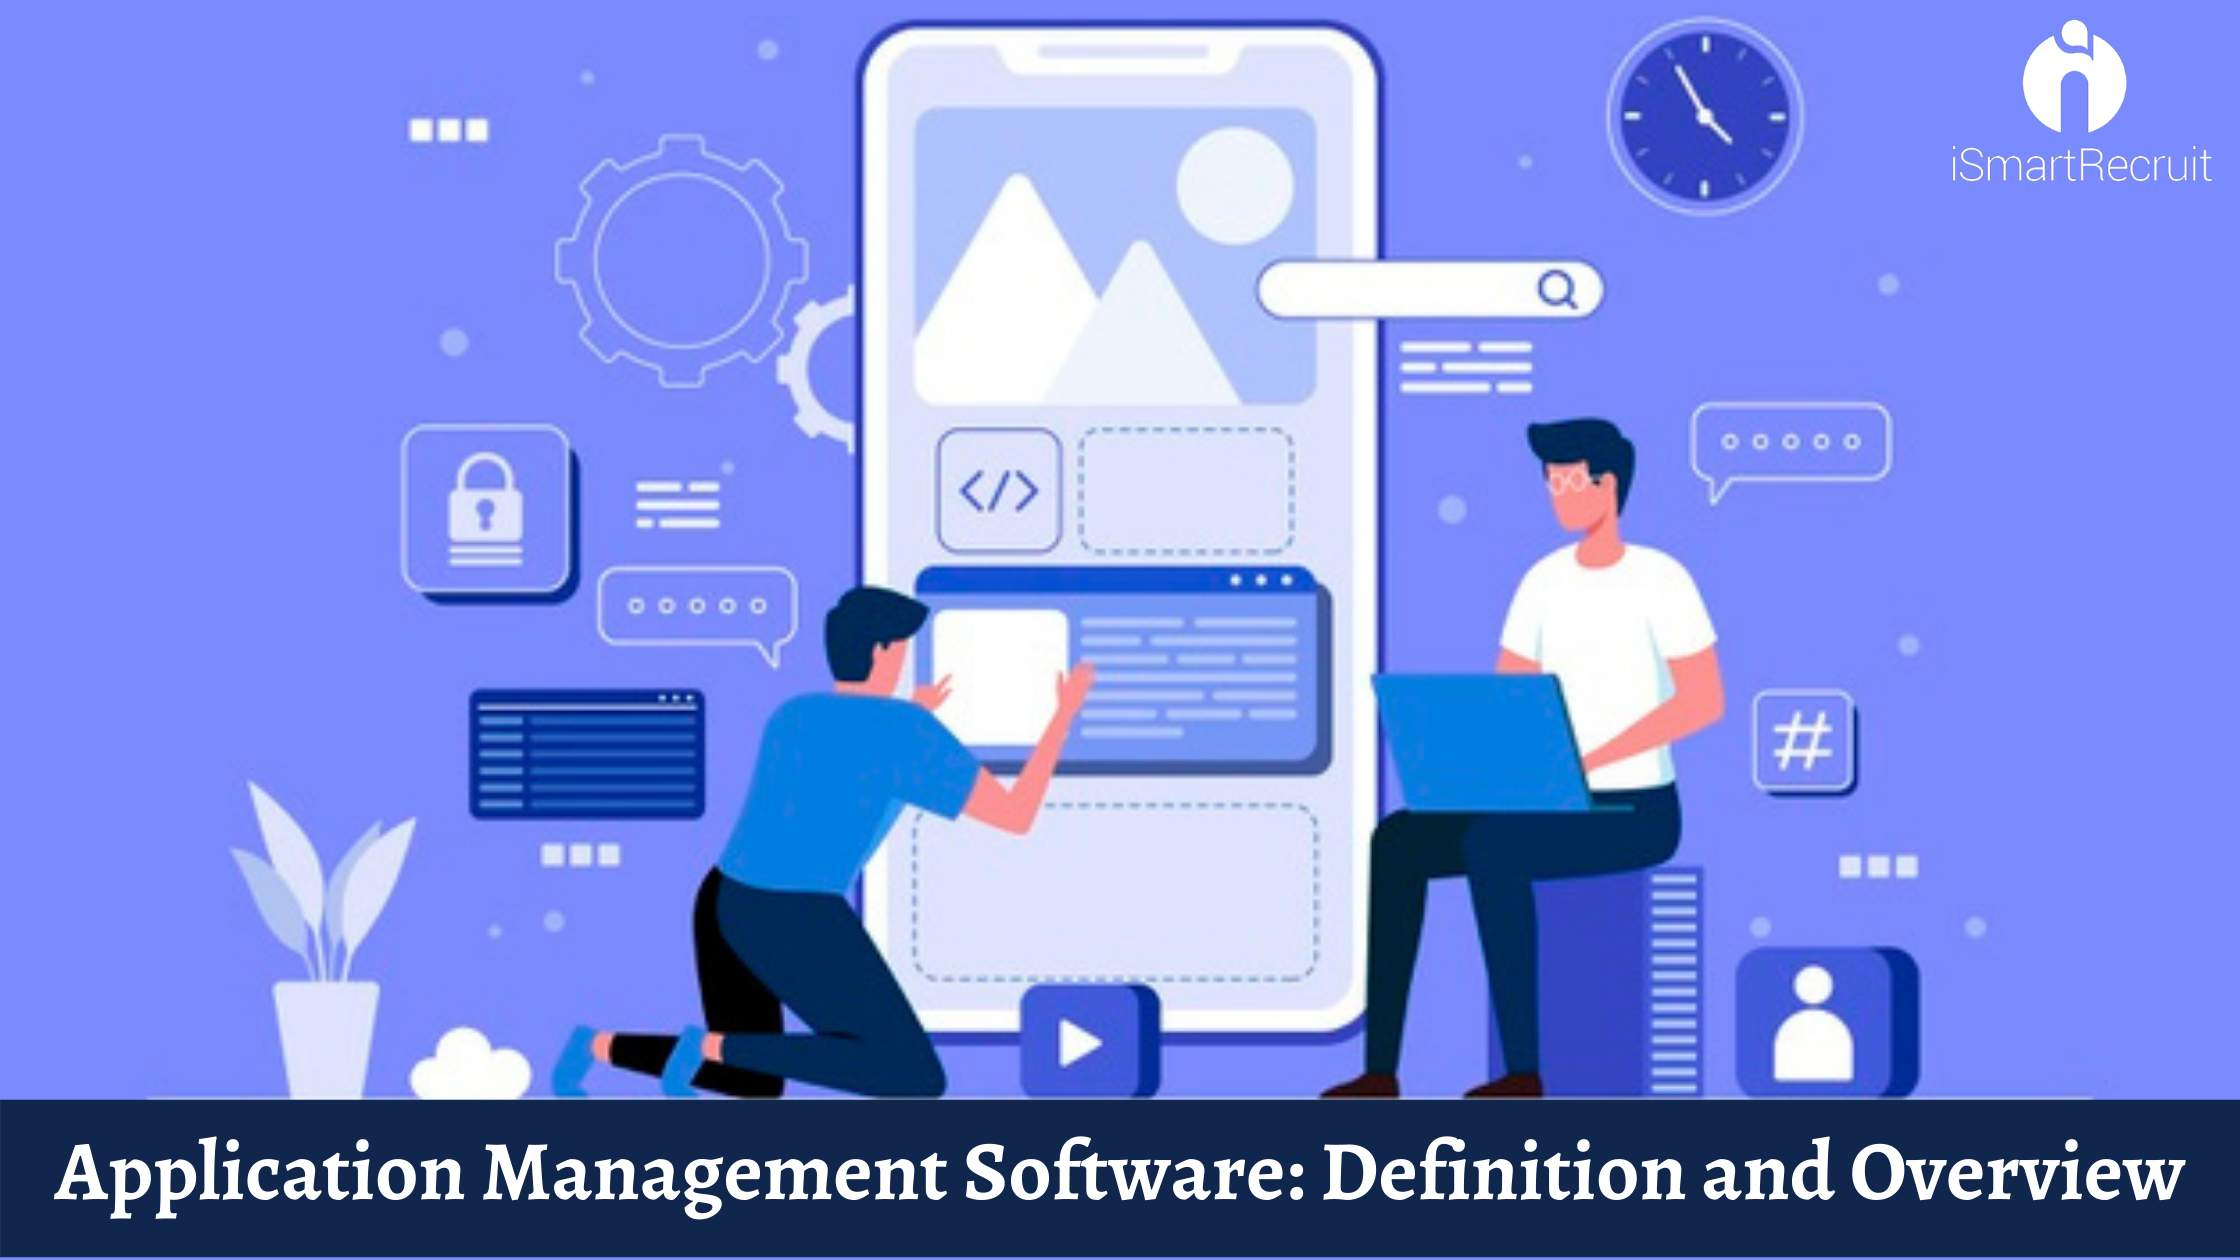 Application Management Software: Definition and Overview